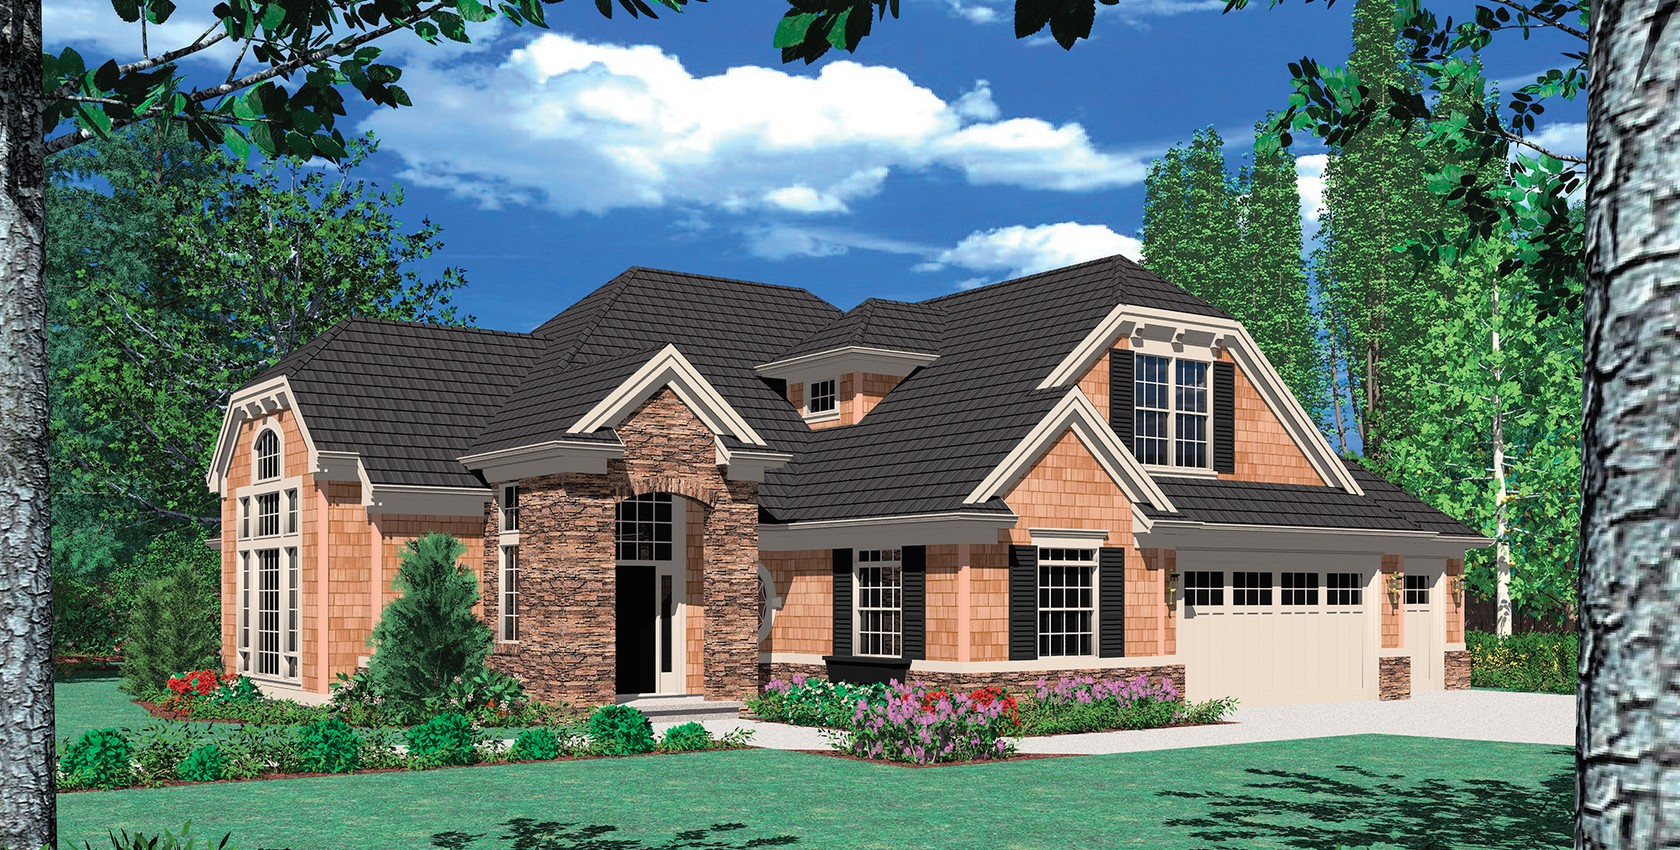 Image for Sidell-European Cottage with Games Room and Wet Bar-3470